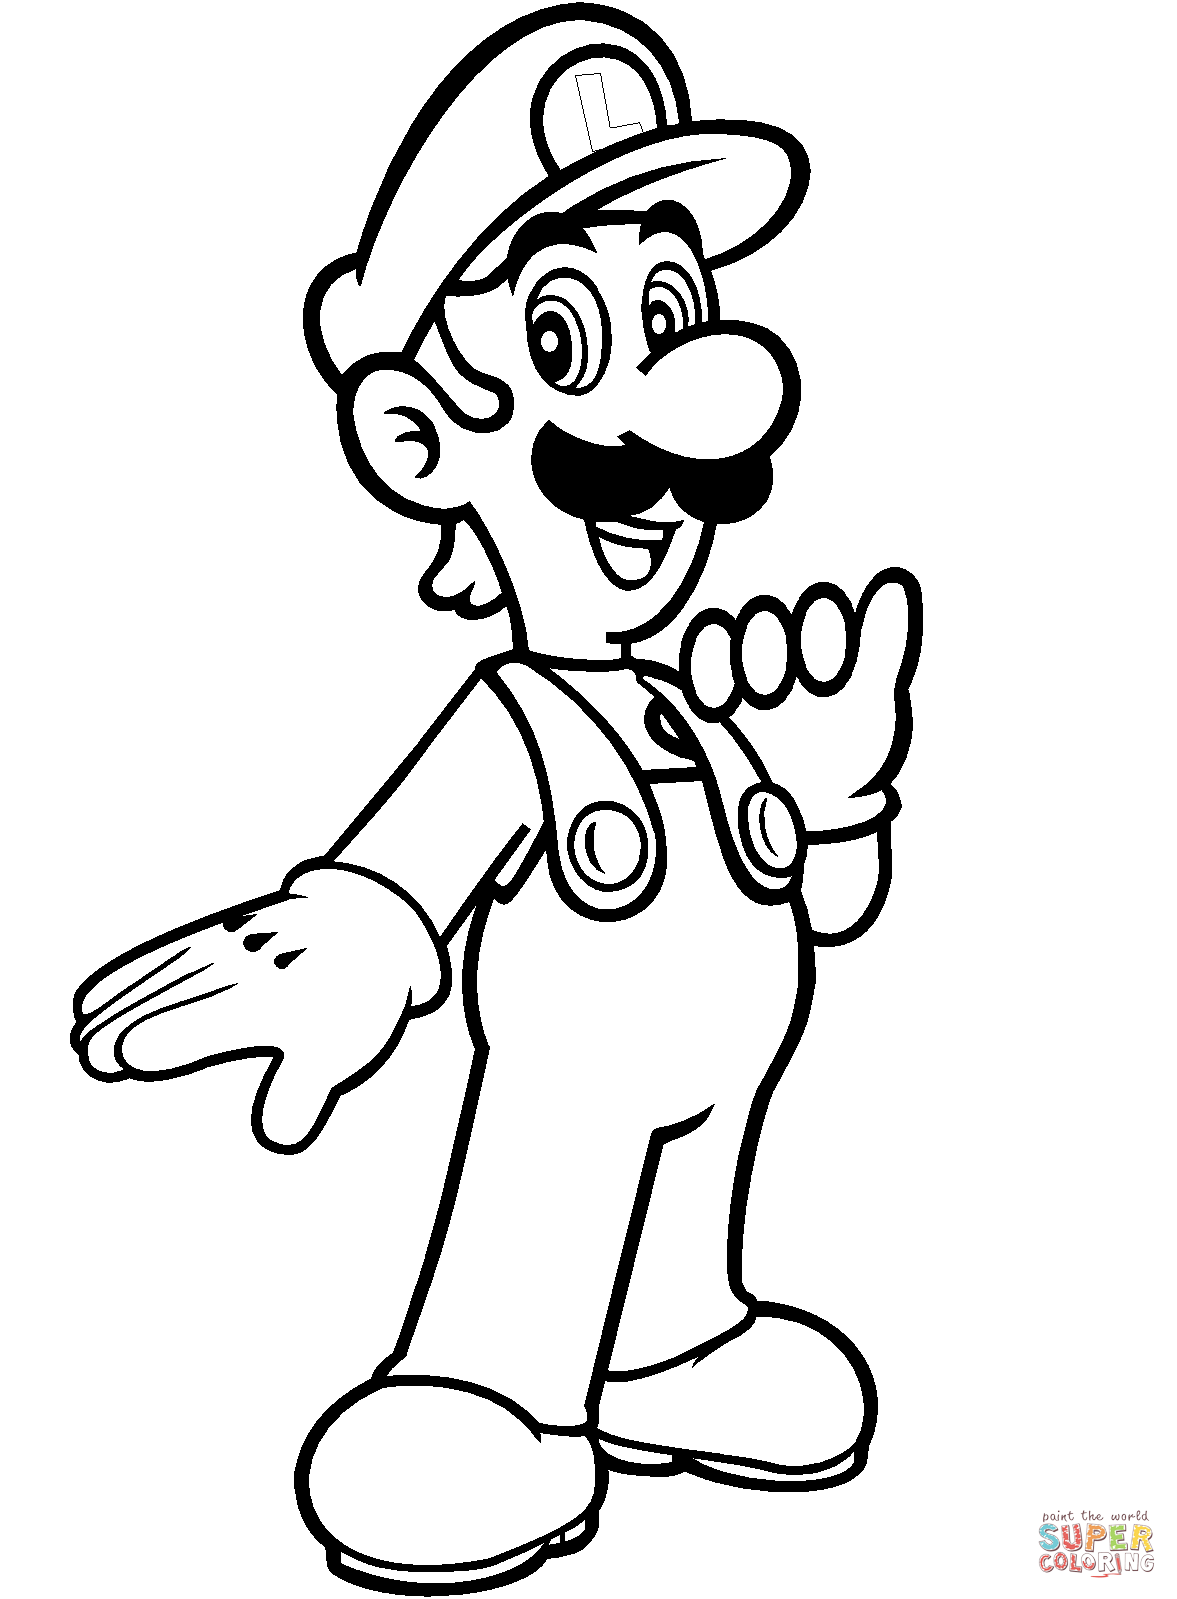 1177x1599 Super Mario Luigi Coloring Pages Super Mario Luigi Coloring